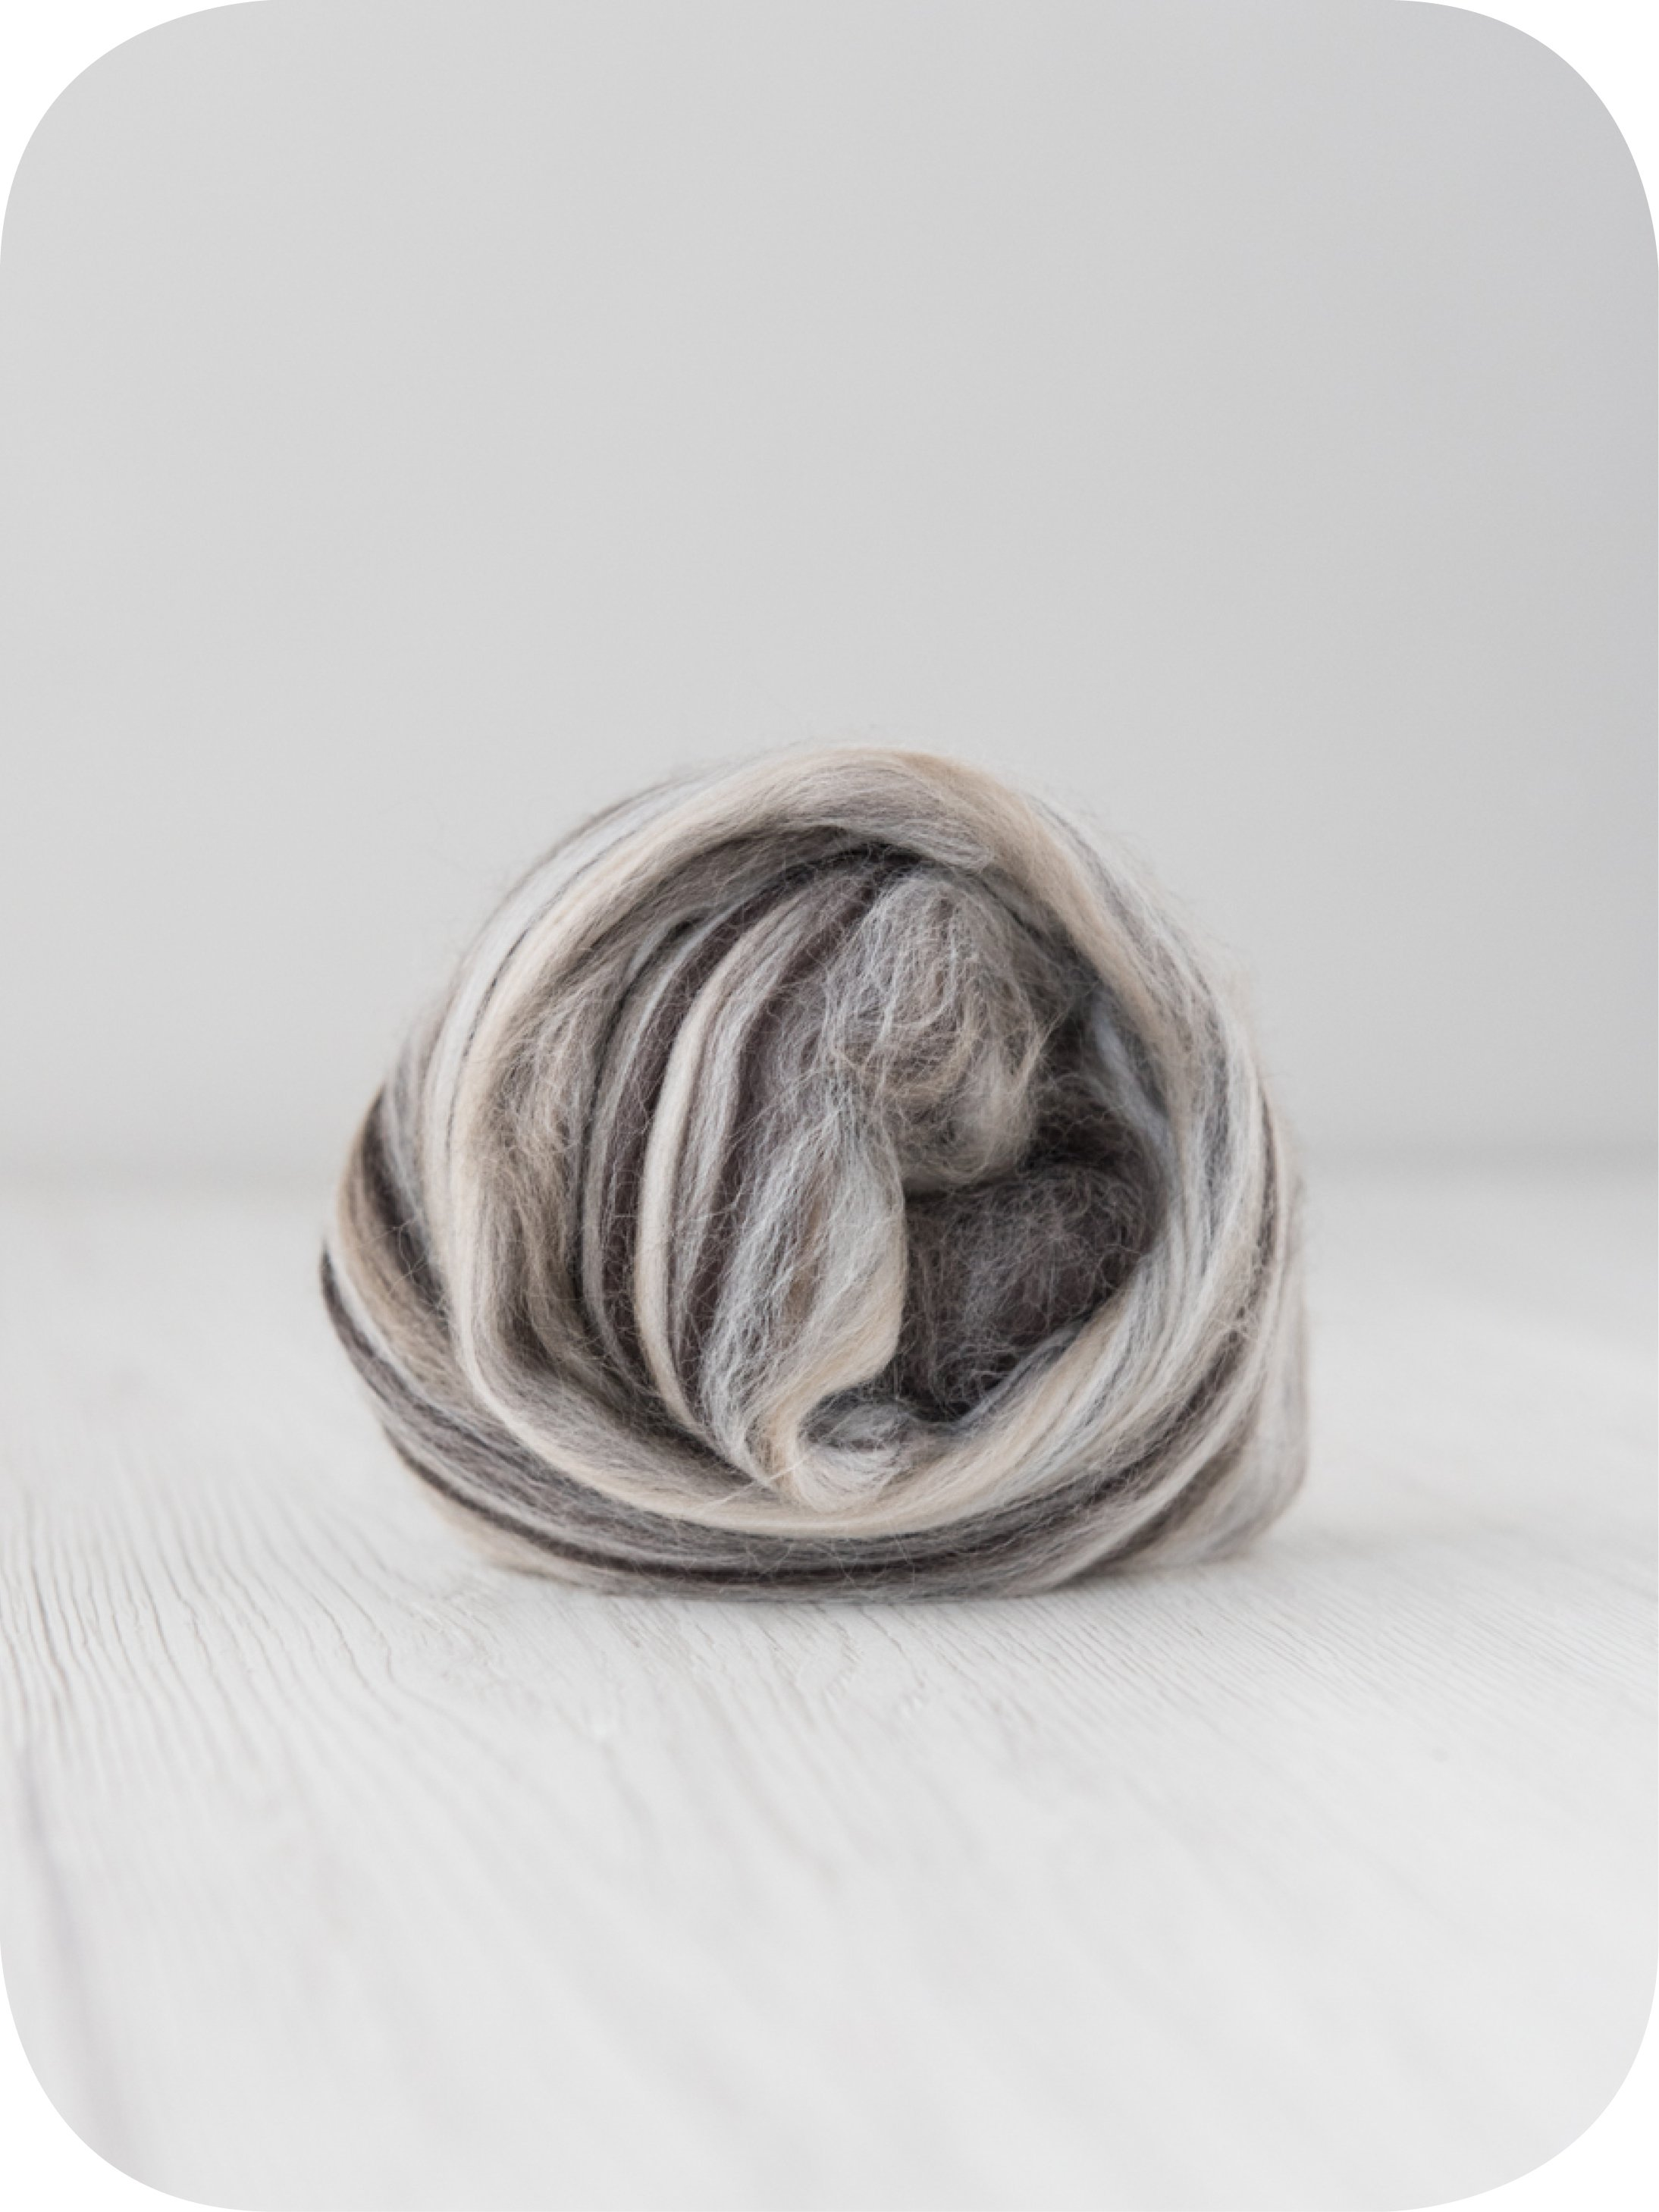 Image of 10 Kg. Extra Fine Merino Wool Tops (Sliver) - Sugar Candies Collection Cappuccino